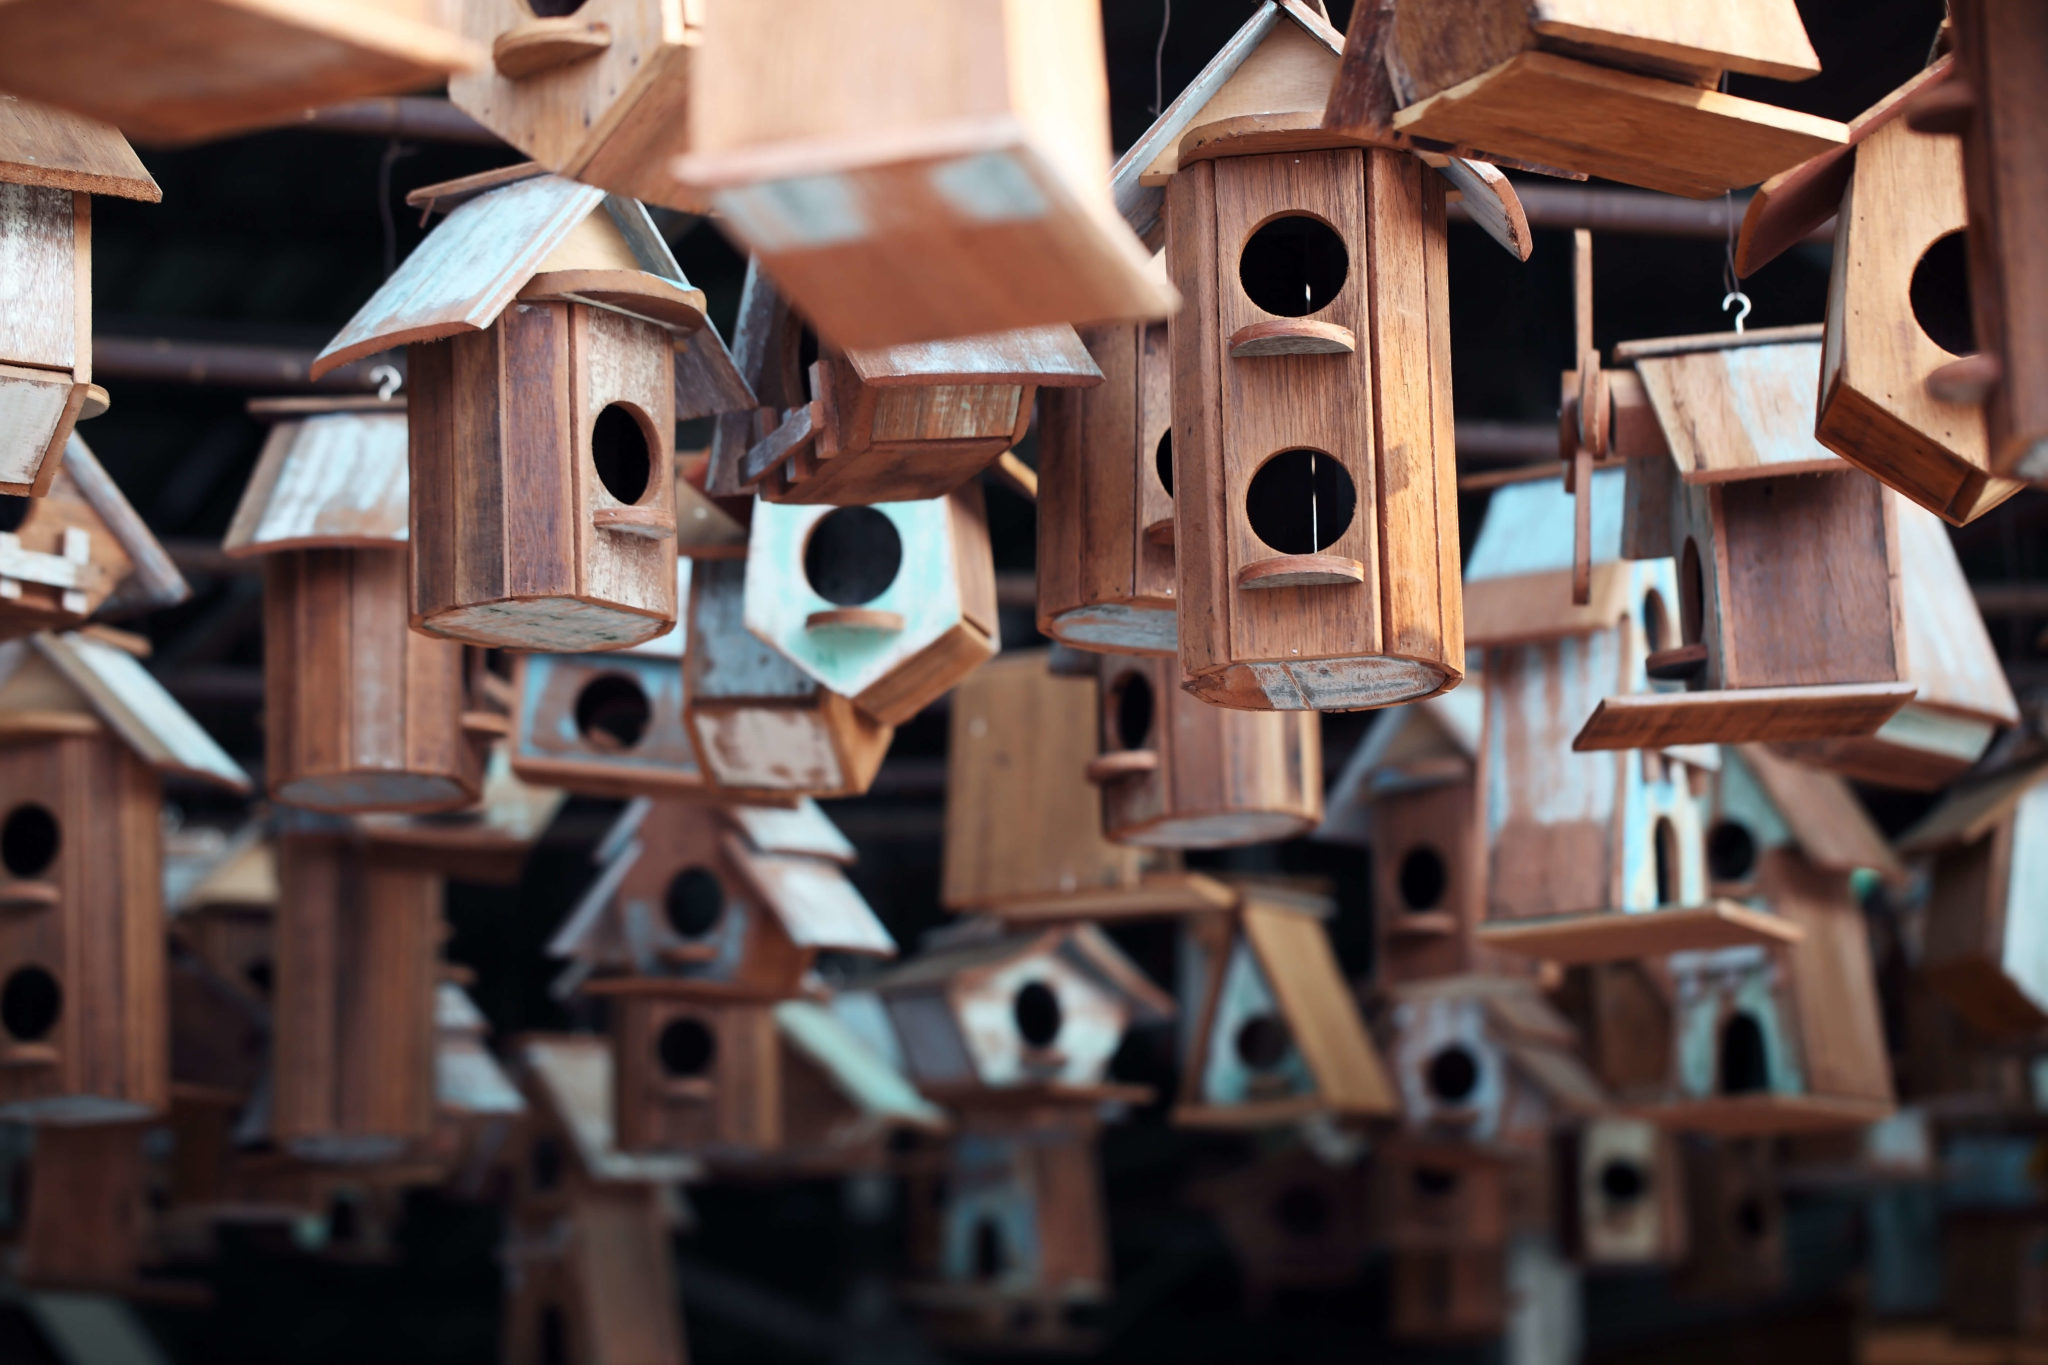 13 FREE Birdhouse Plans (Easy PDF/Video Instructions